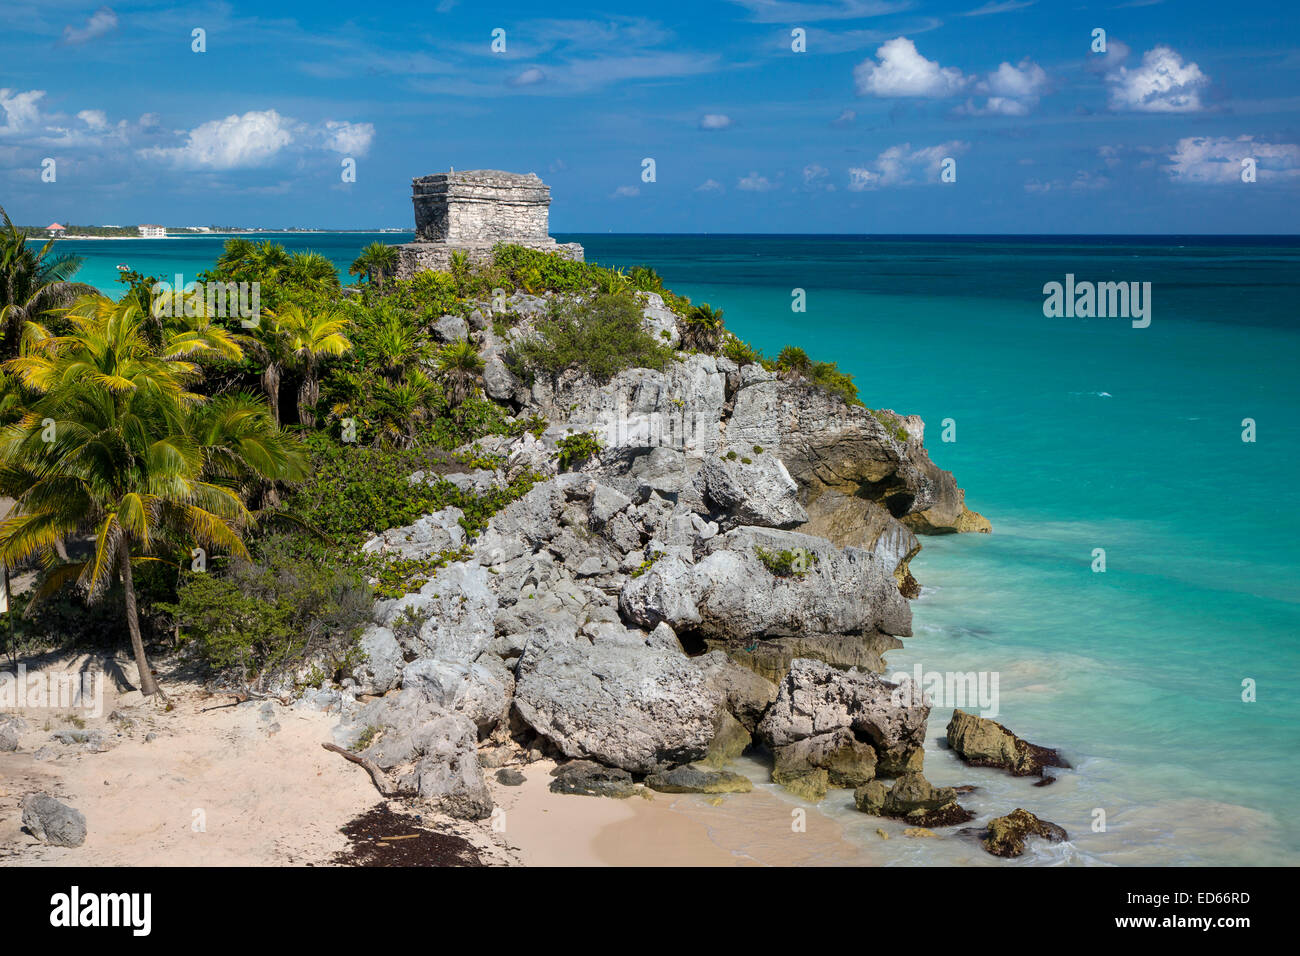 Ruins of the Mayan temple grounds at Tulum, Yucatan, Mexico - Stock Image